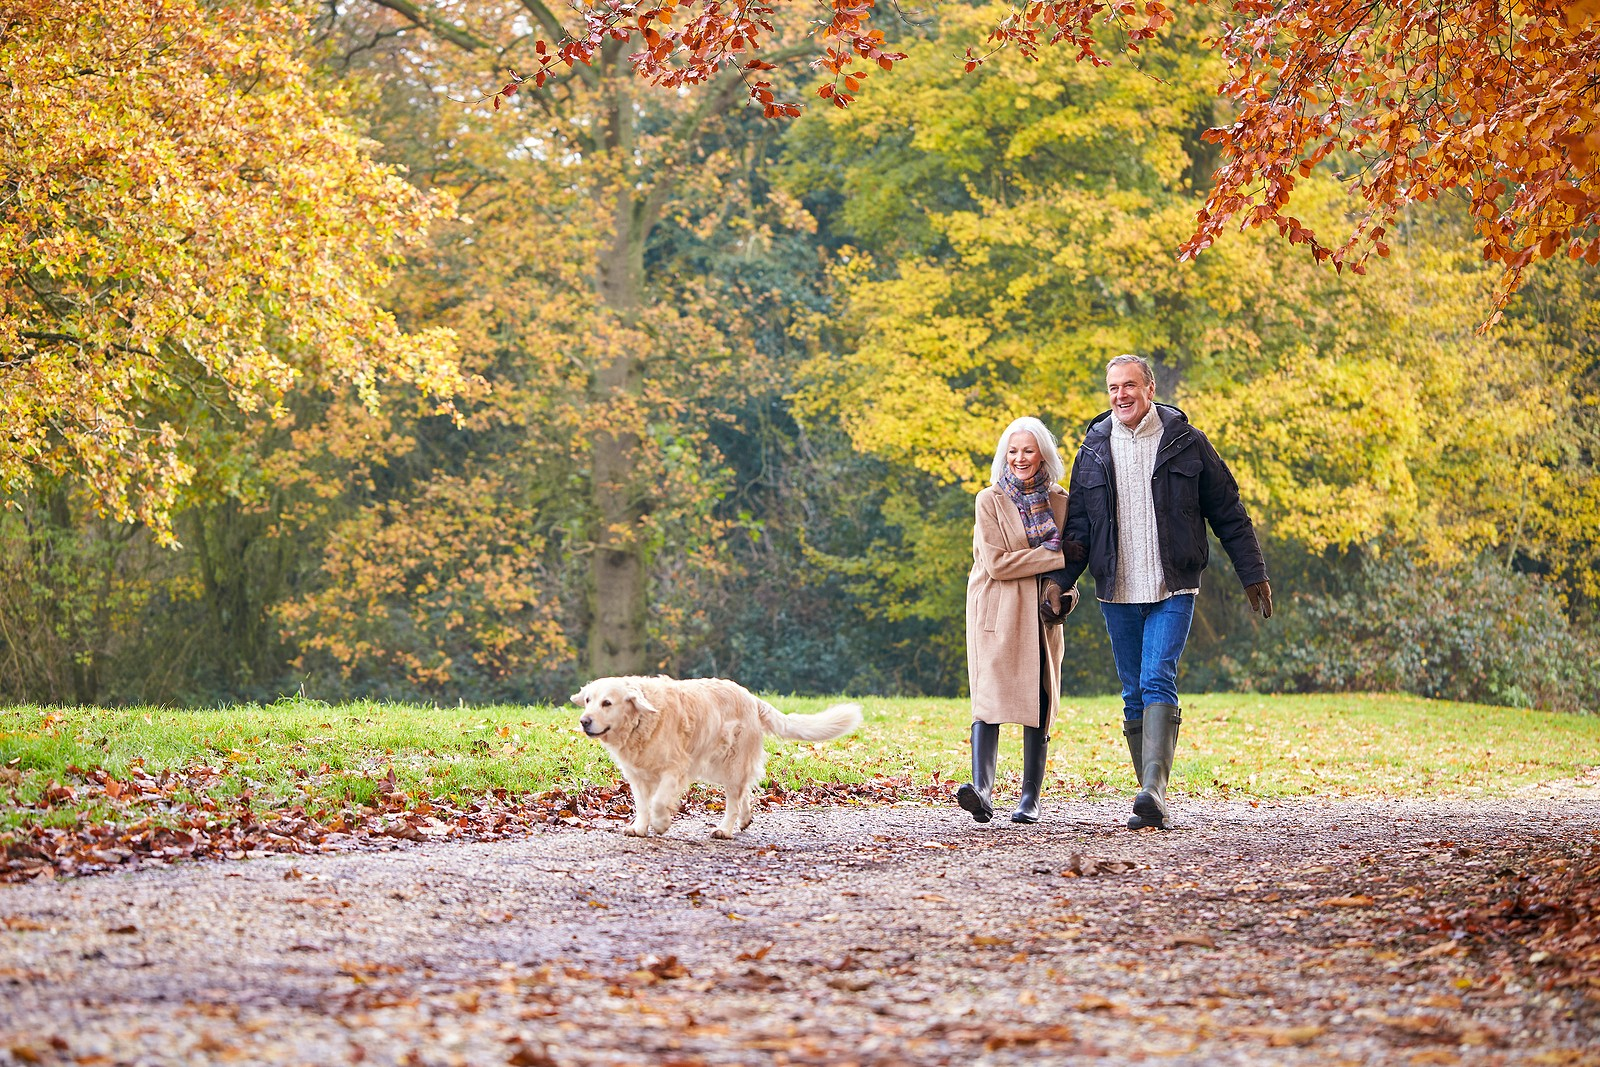 Senior couple walking in park with dog.